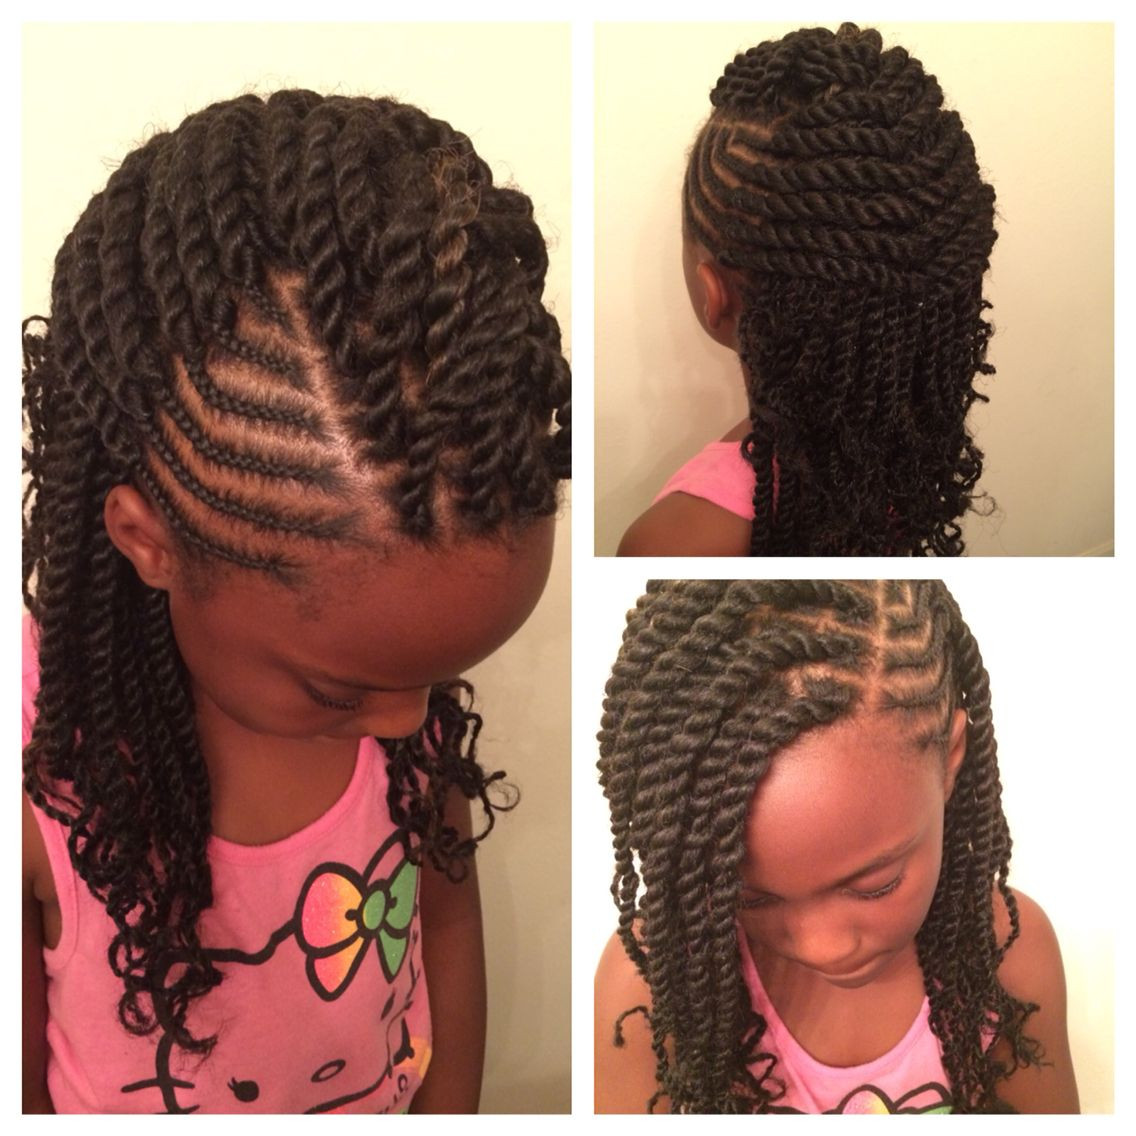 The Best Lil Girl Twist Hairstyles